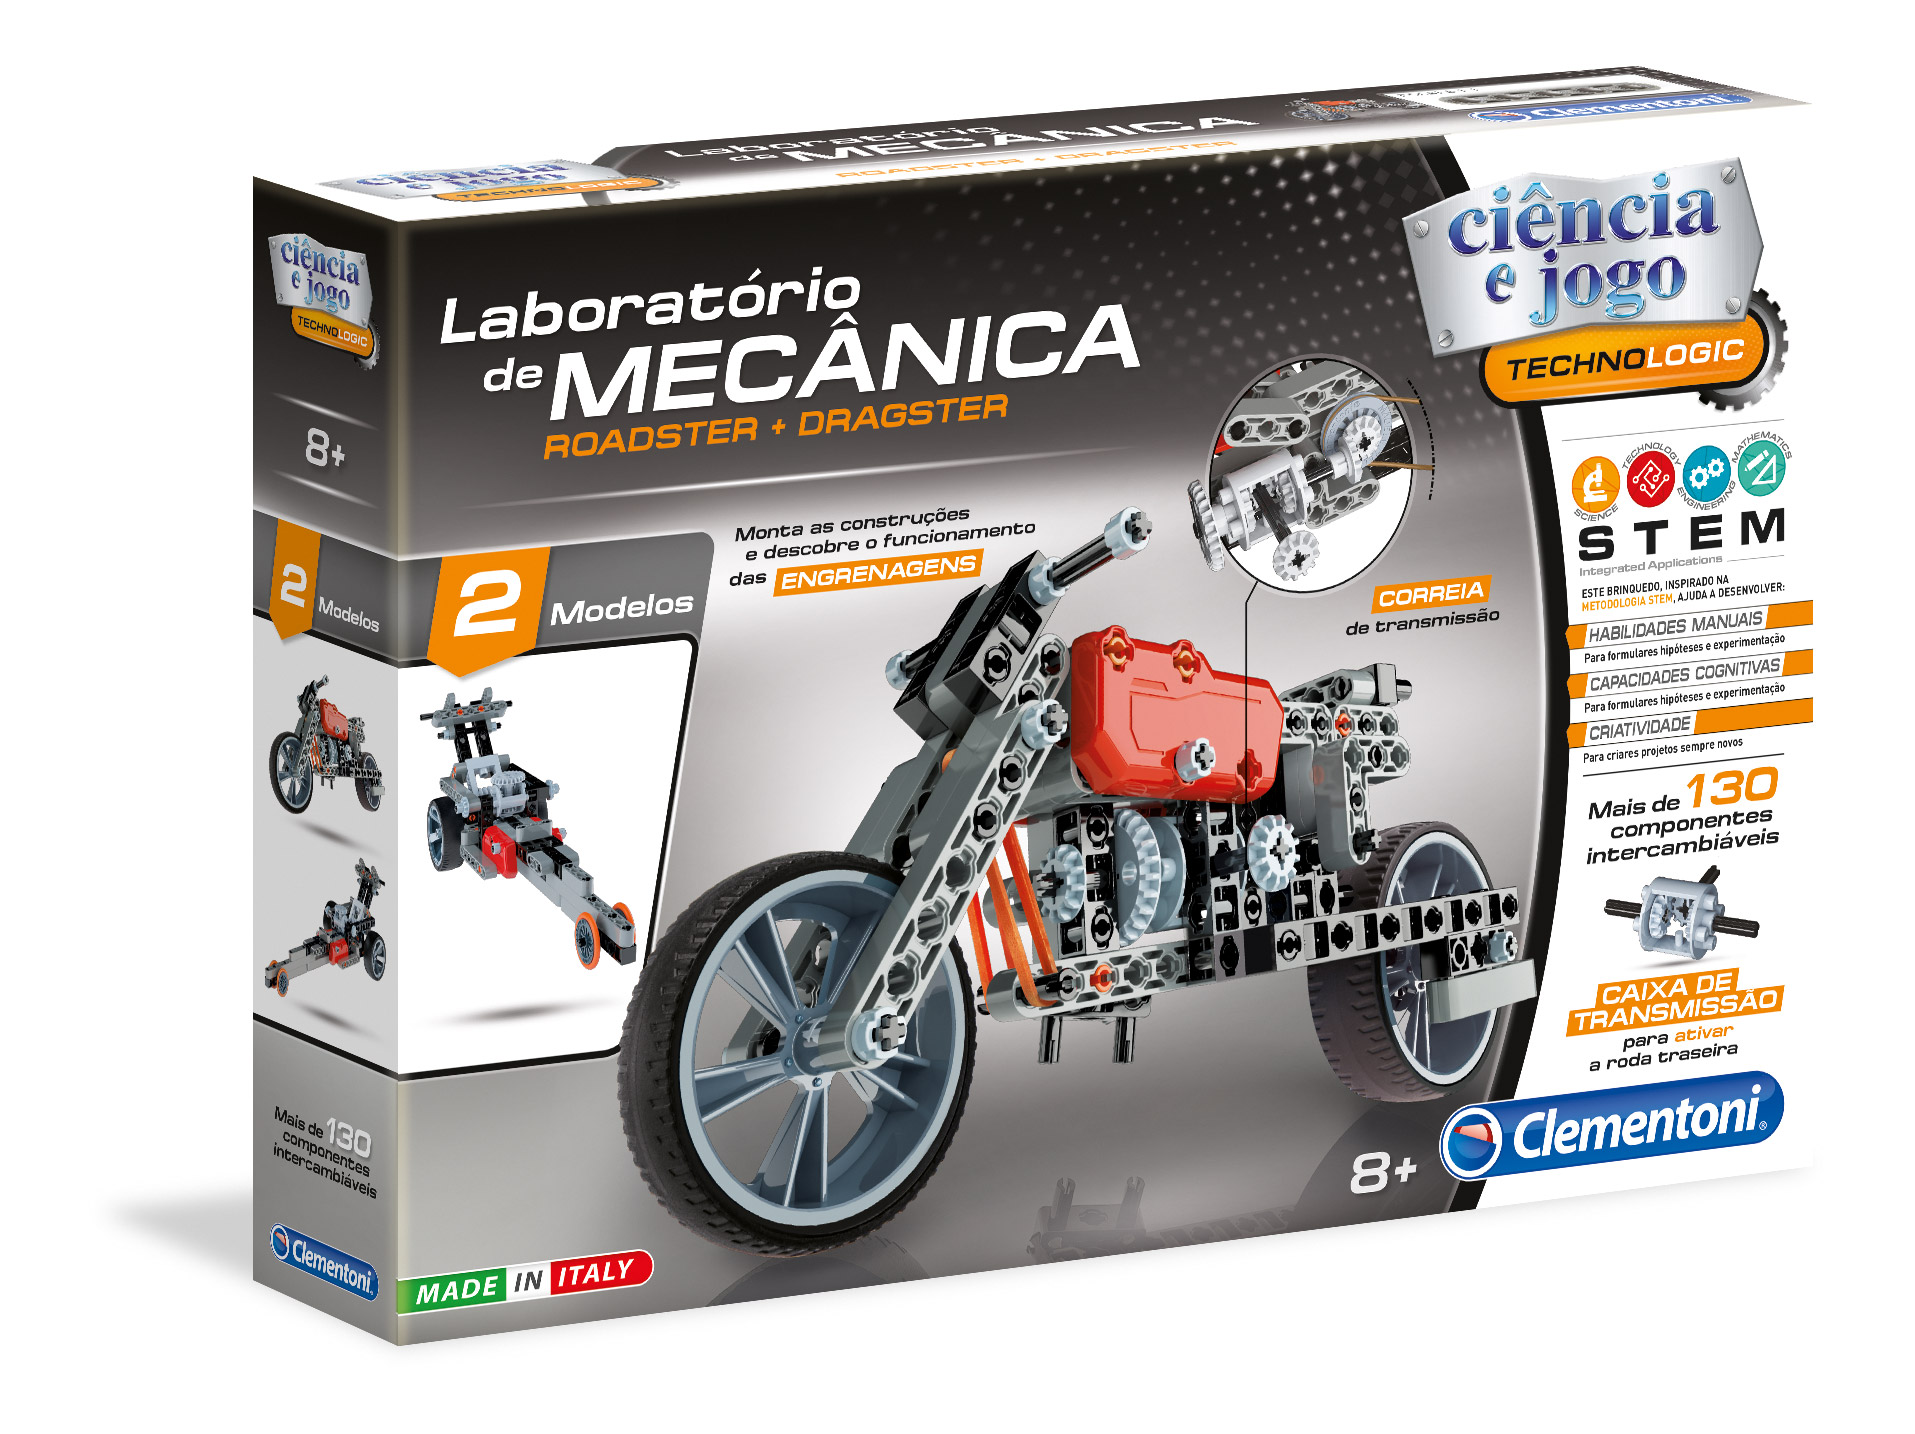 Lab. Mecânica - Roadster e Dragster